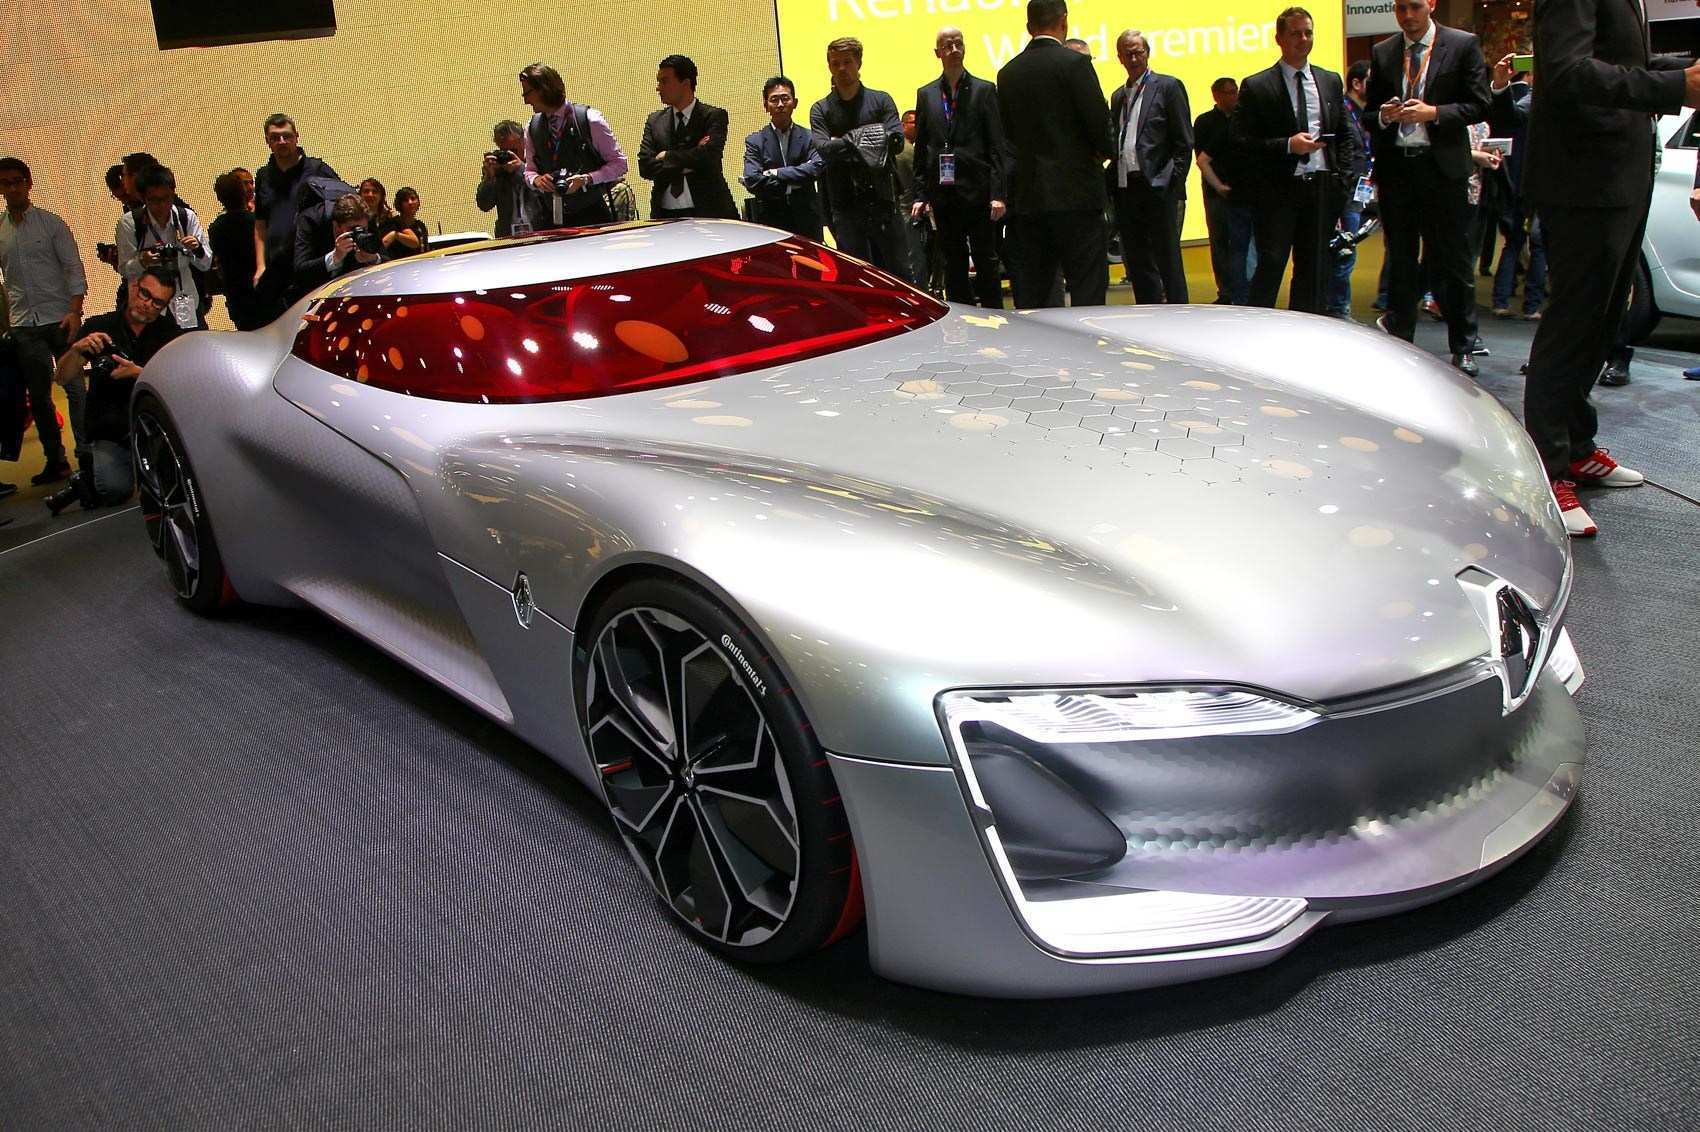 69 New Renault Concept 2020 Overview by Renault Concept 2020